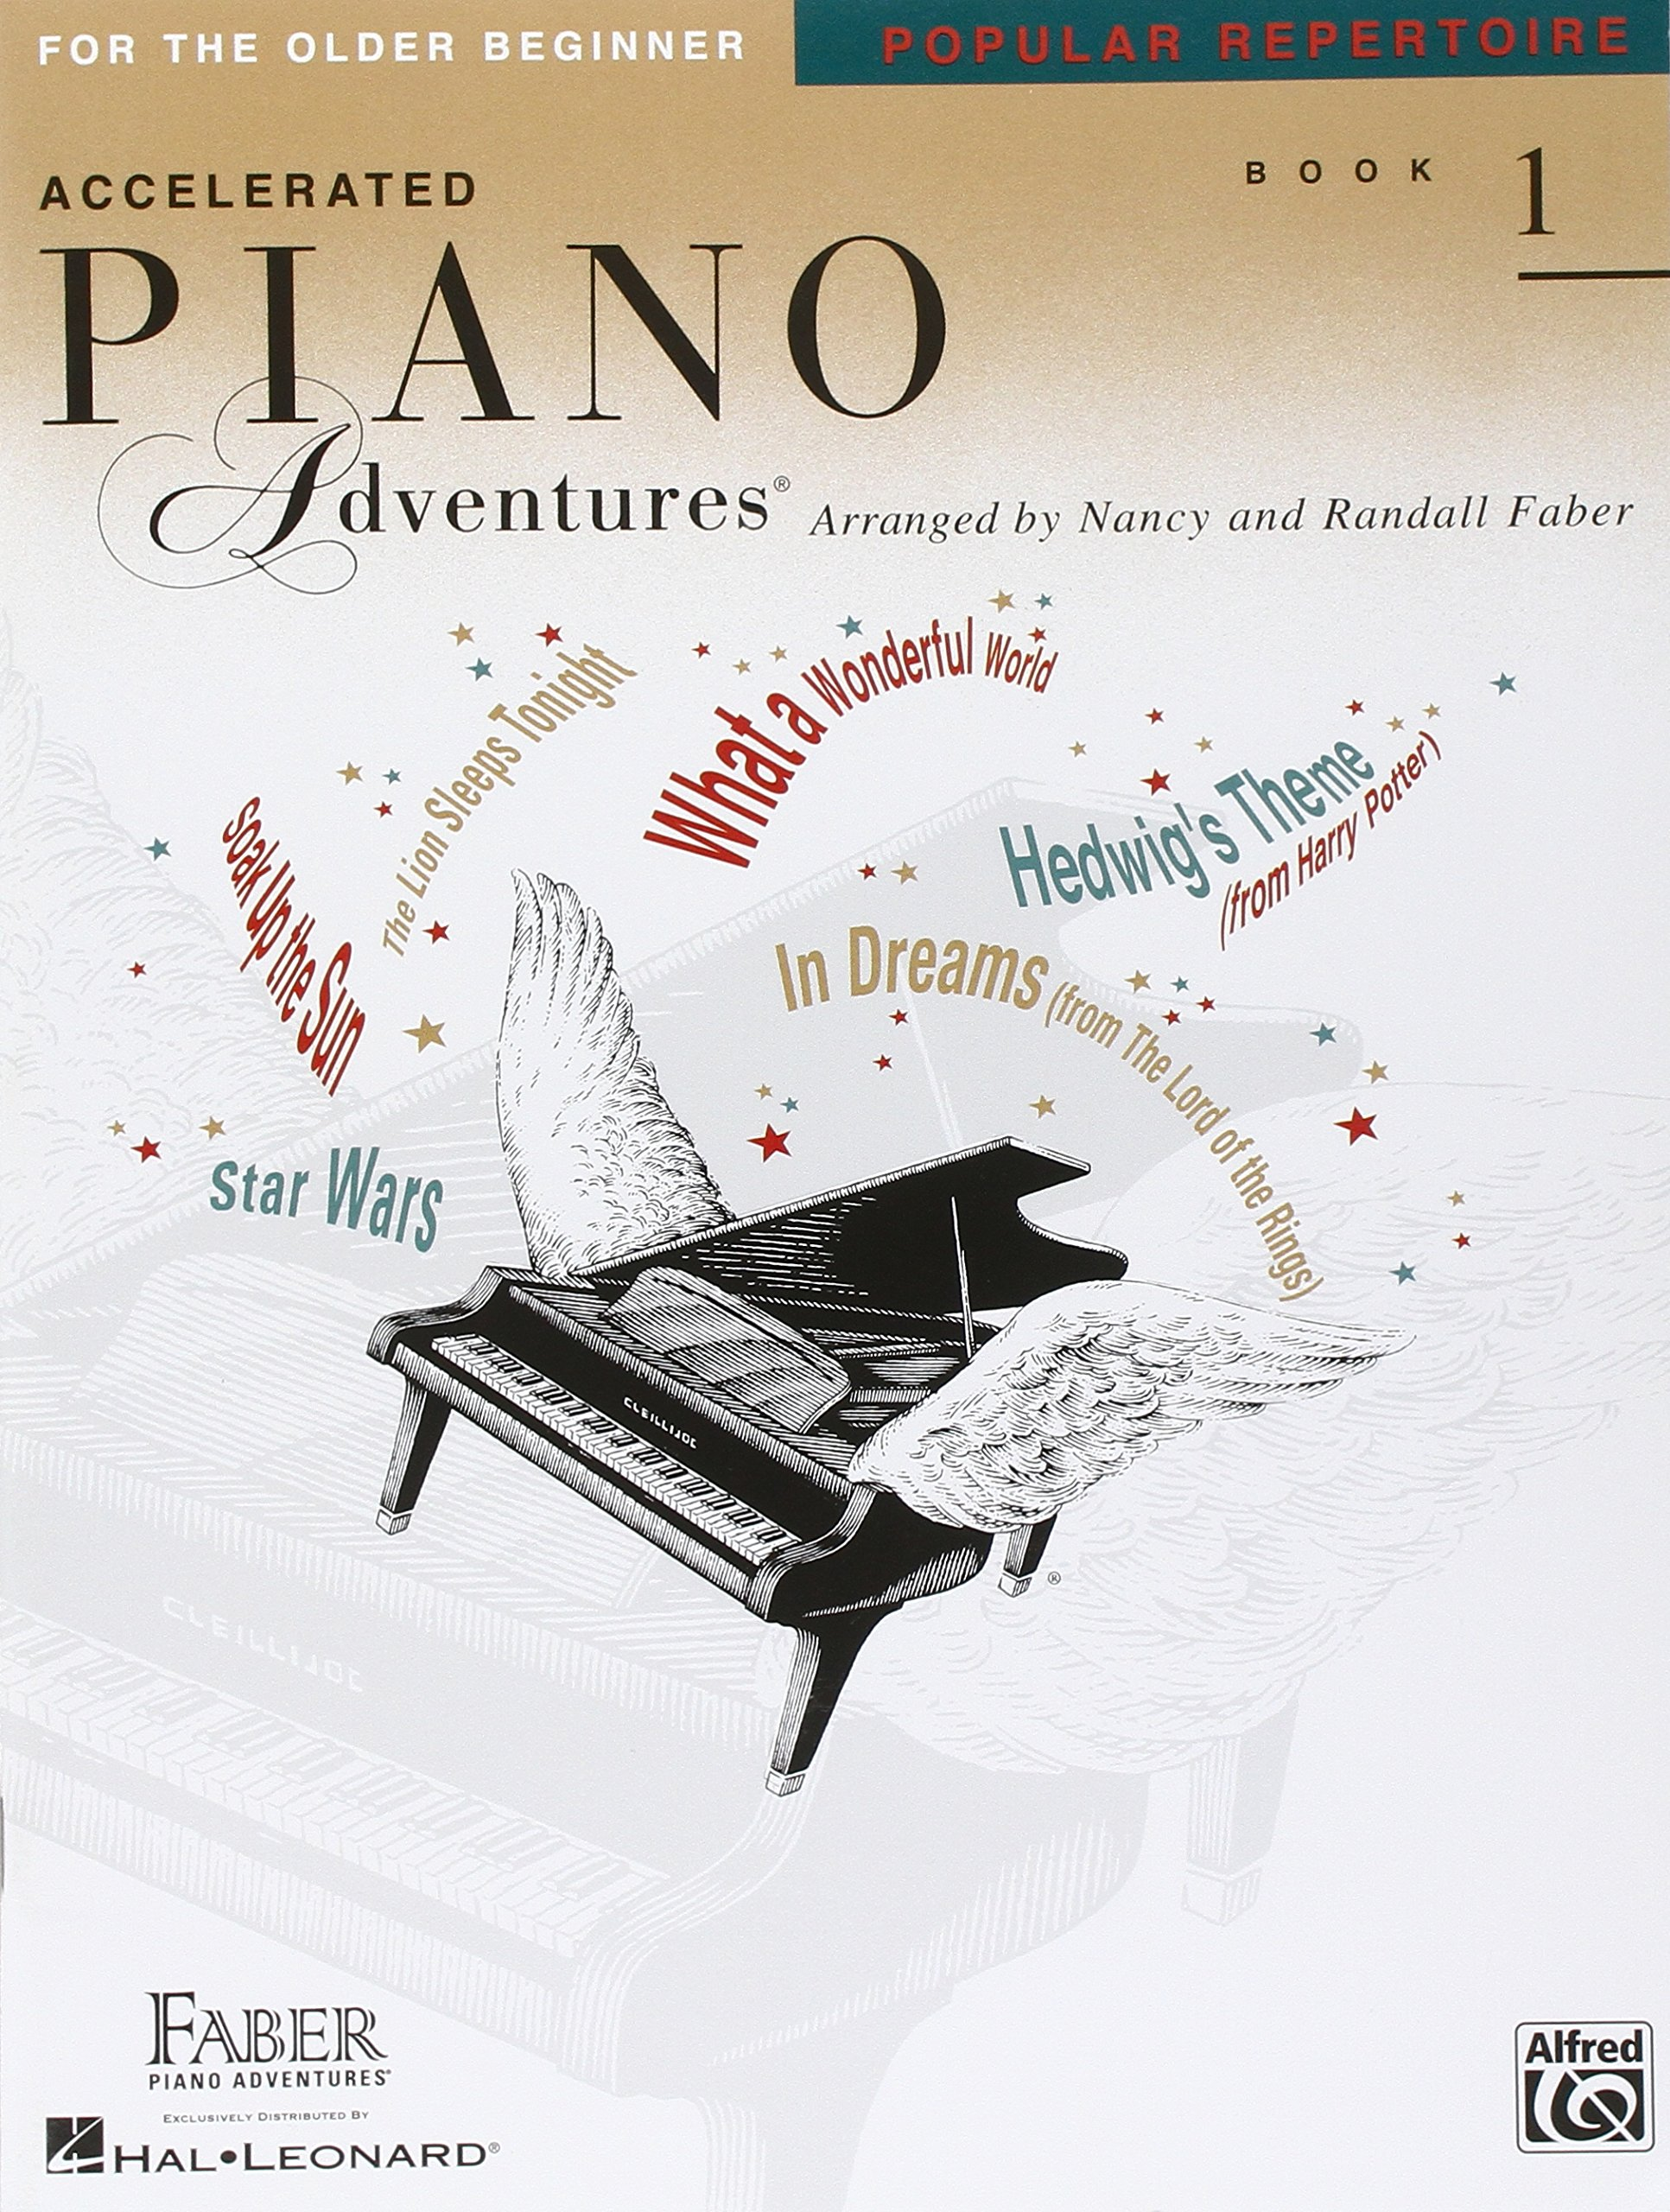 Accelerated Piano Adventures for the Older Beginner: Popular Repertoire, Book 1 (Faber Piano Adventures)